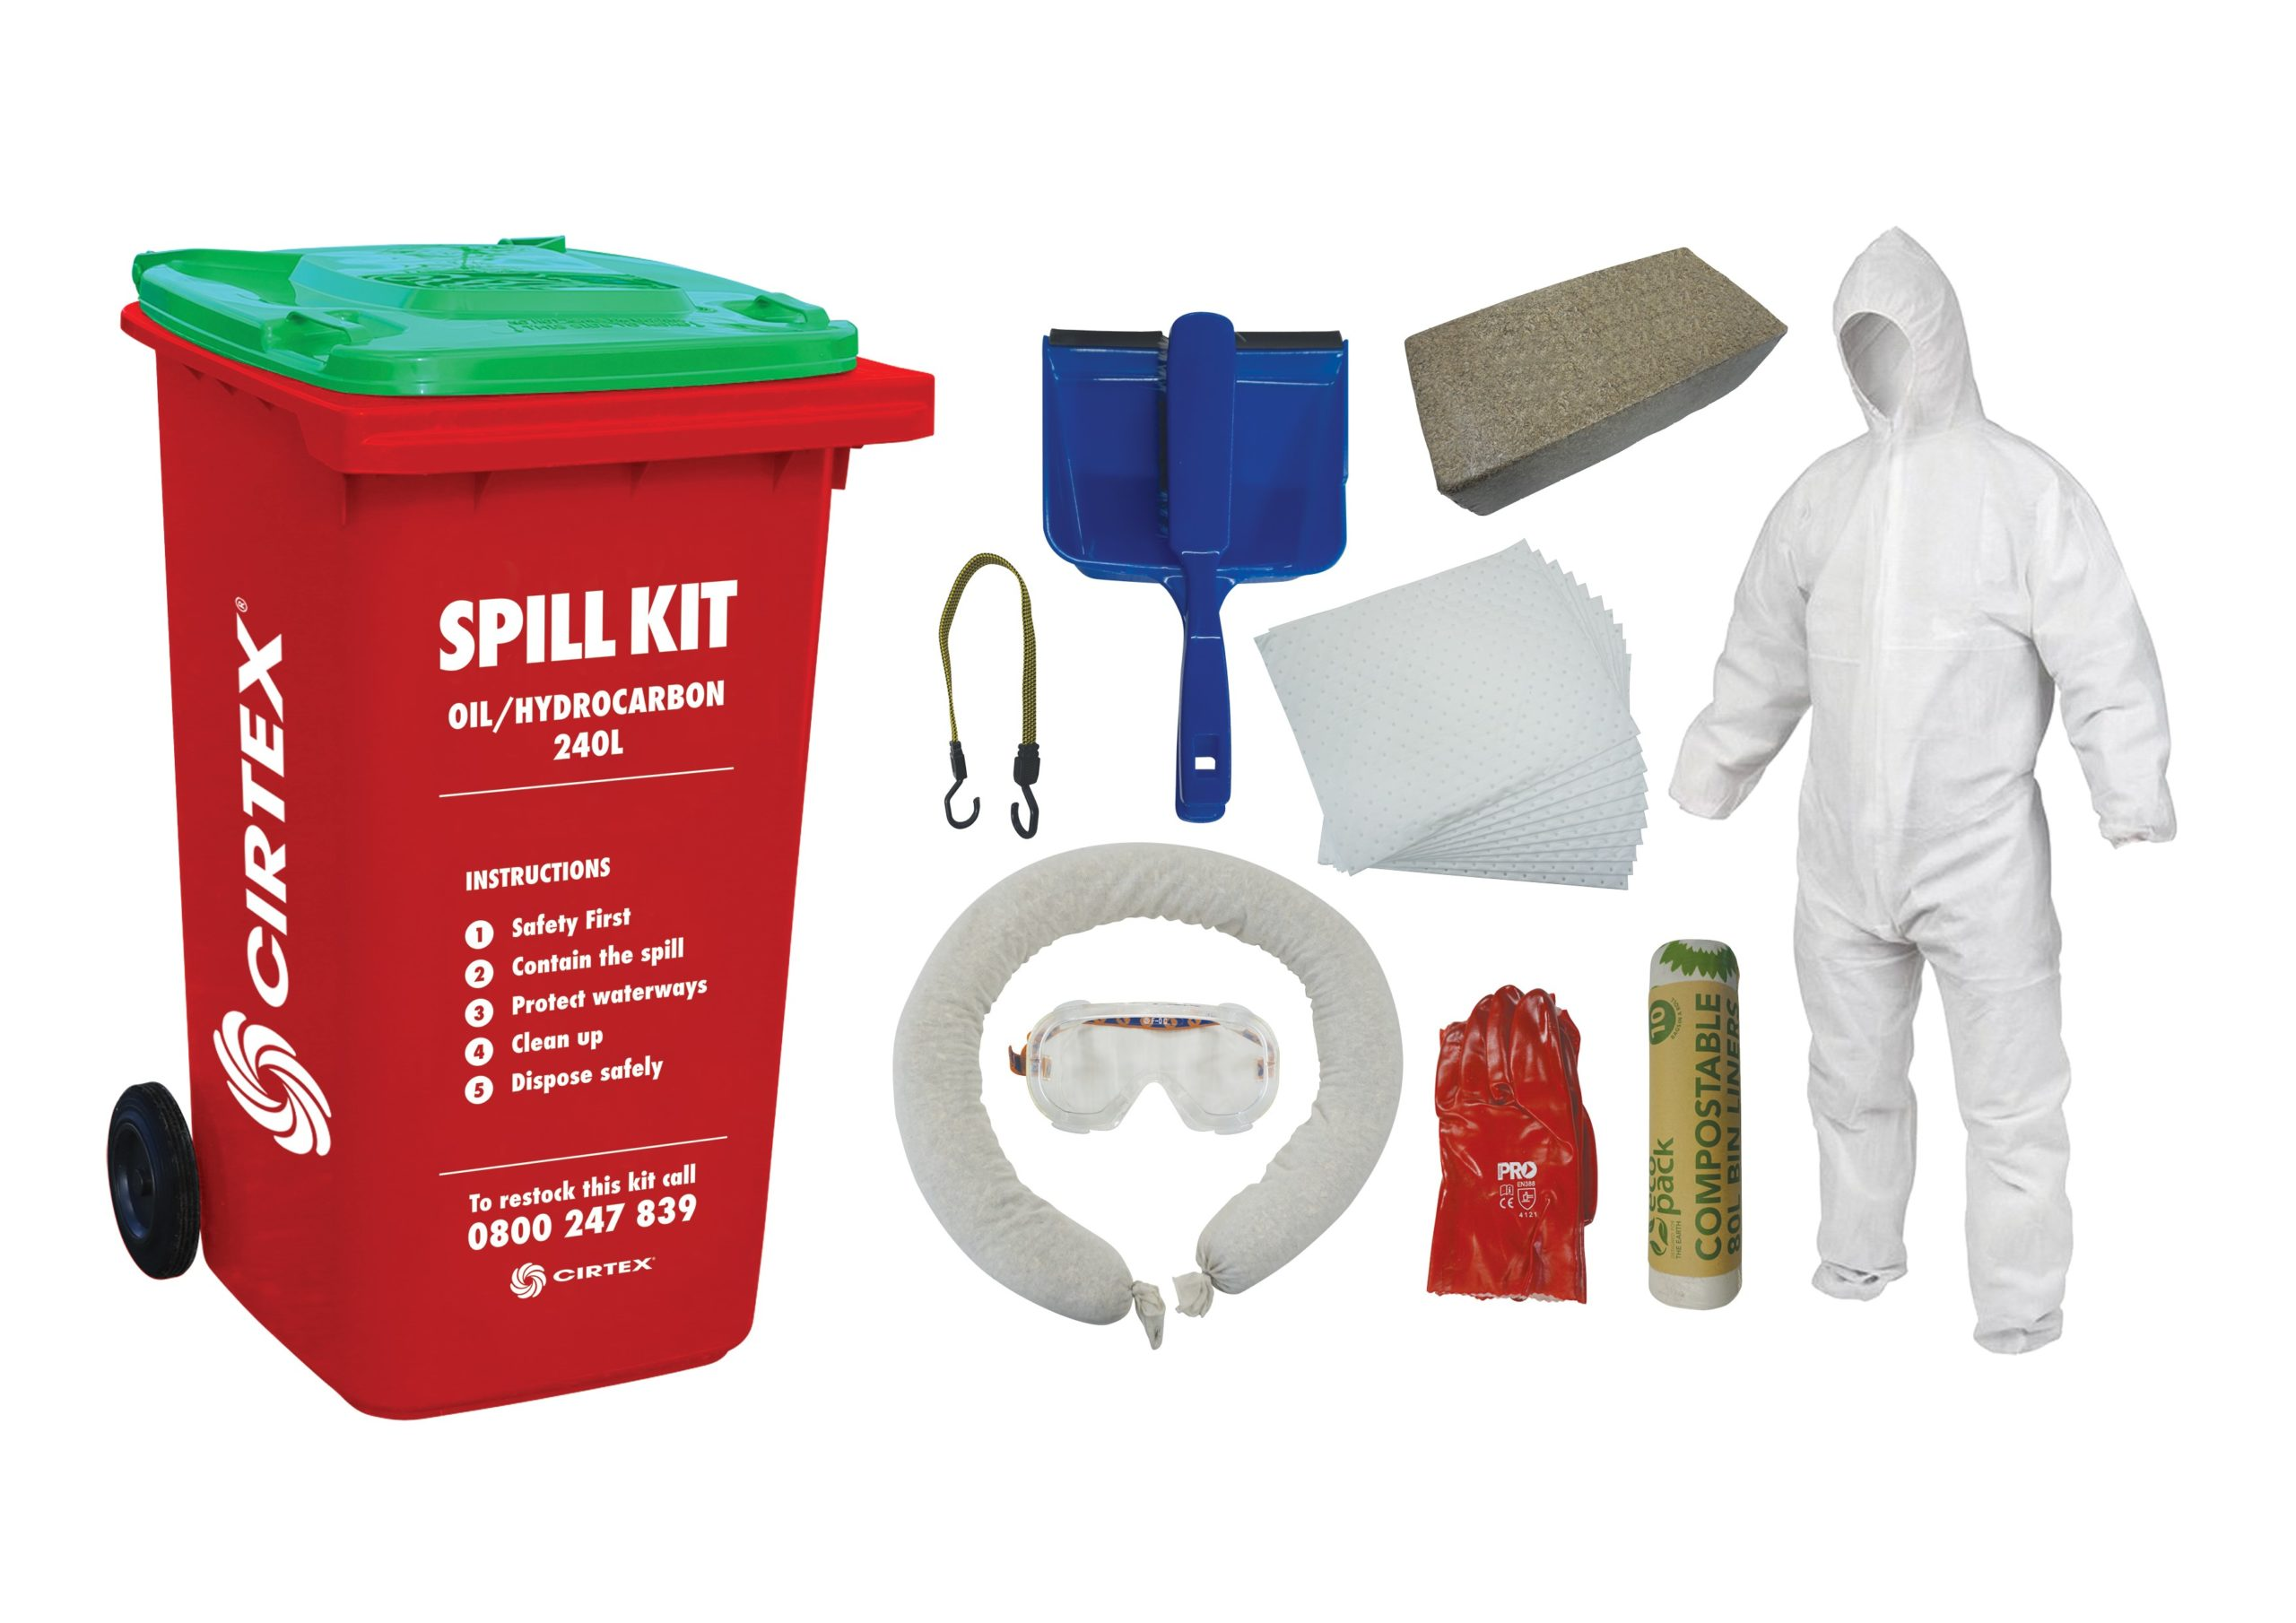 Spill-Kit-and-components